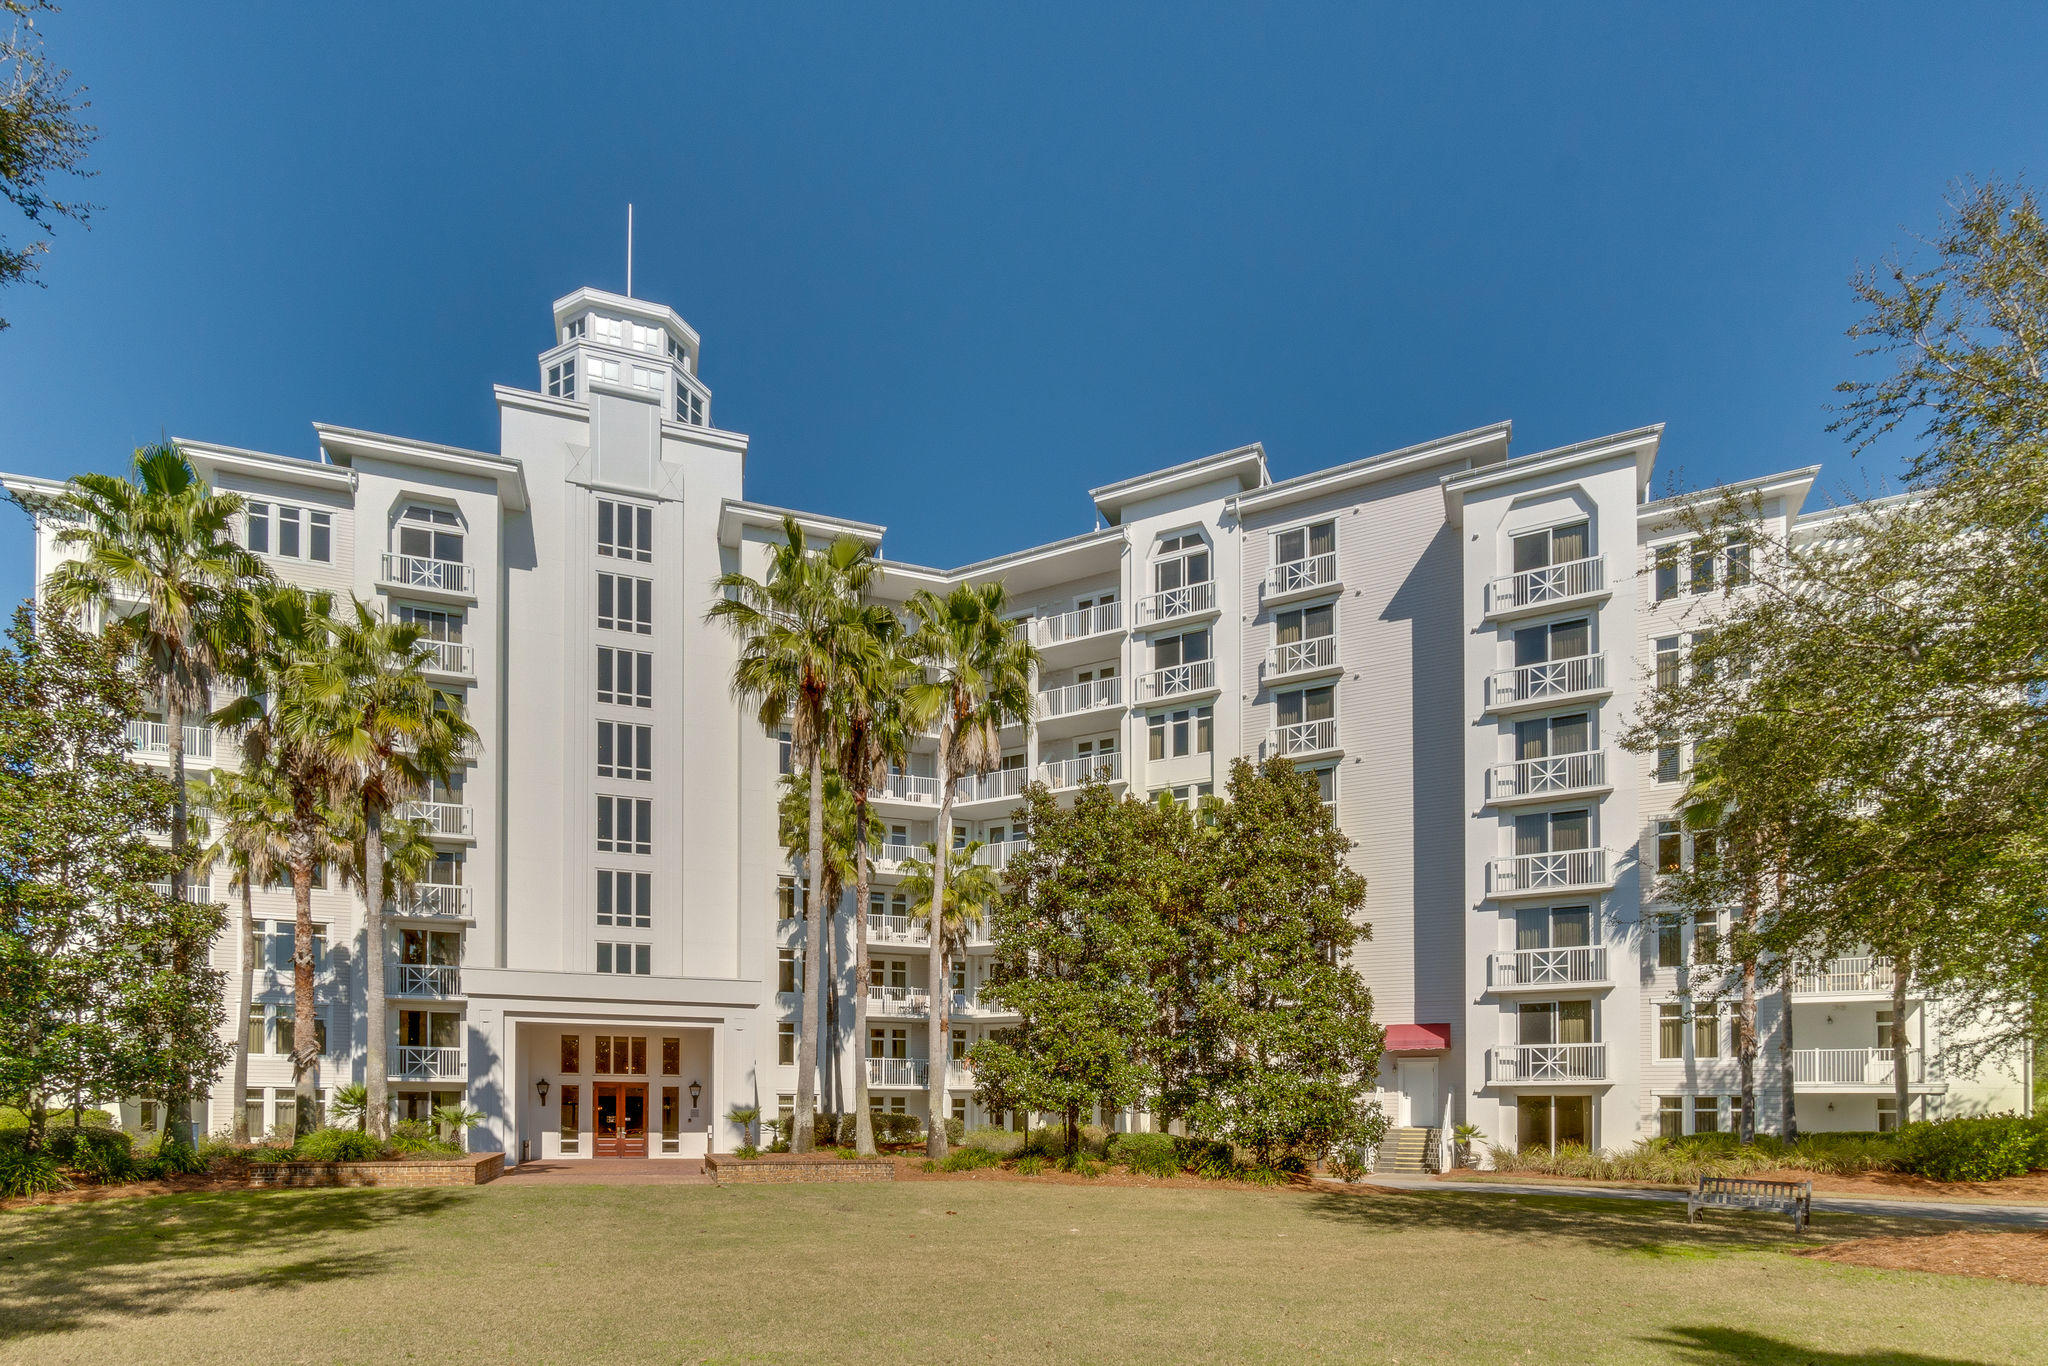 """This is an ''A'' rated ( Sandestin Rental Program) 7th floor studio overlooking the Burnt Pine golf course and views of the Choctawhatchee Bay. Easy access to the Baytowne Conference Center and The Village Of Baytowne Wharf. As an introduction to the Sandestin lifestyle, we invite our new owners to explore amenities that make Sandestin special. The listing brokerage and seller(s) are presenting the buyer(s) of this property with (2) 90-minute rounds of Tennis court time, a golf foursome at one of our three championship courses, a round of golf for up to four (4) players and an invitation to ''Club Night'' at the unrivaled Burnt Pine Golf Club. Sandestin Golf and Beach Resort is a major destination for all seasons and all ages, and has been named the #1 resort on Florida's Emerald Coast. This magical resort spanning over 2,000 acres is comprised of over 70 unique neighborhoods of condominiums, villas, town homes, and estates. The resort features miles of sandy white beaches and pristine bay front, four championship golf courses, a world-class tennis center with 15 courts, 4 resort swimming pools (and 15 private neighborhood pools), a 113-slip marina, a fully equipped and professionally staffed fitness center and spa, meeting spaces and The Village of Baytowne Wharf, a charming pedestrian village with events, shopping, dining, family entertainment and nightlife. For true golf cart community living, Grand Boulevard is just outside the resort gates and provides access to additional shopping, dining and entertainment â"""" all without traveling on Hwy. 98.  Come to Play, Stay for Life!"""